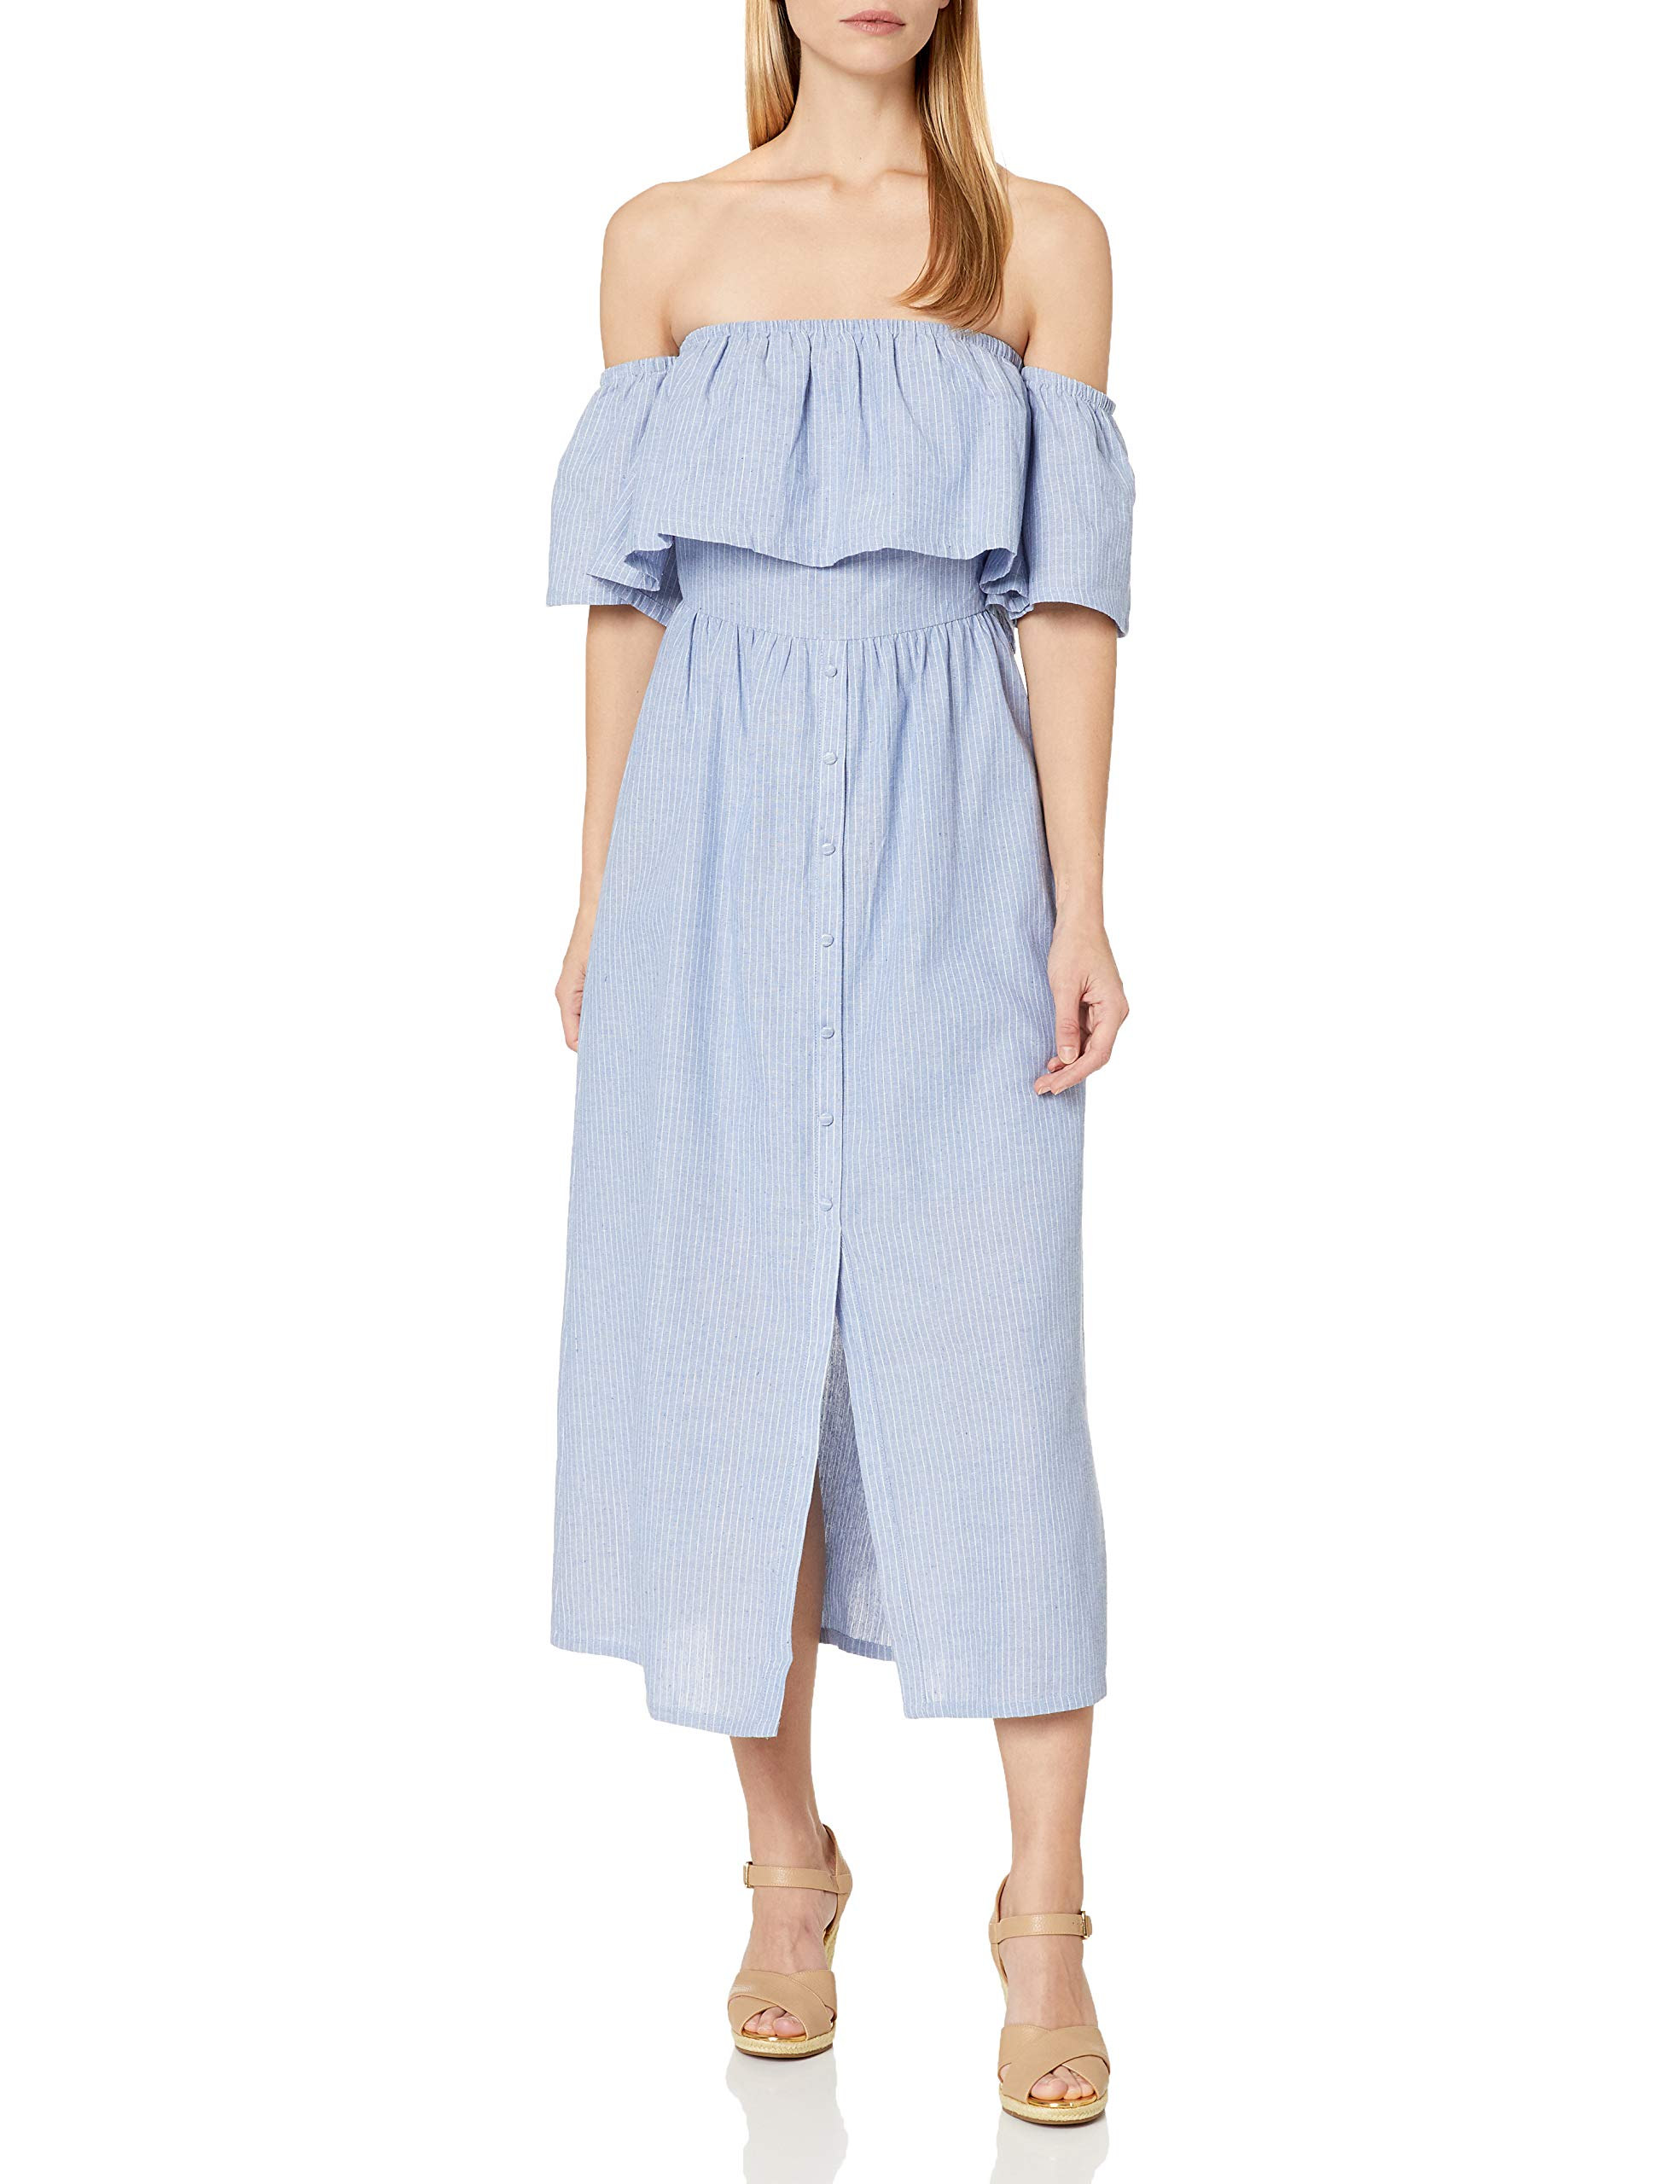 Available at Amazon: JOA Women's Off The Shoulder Button Front Maxi Dress